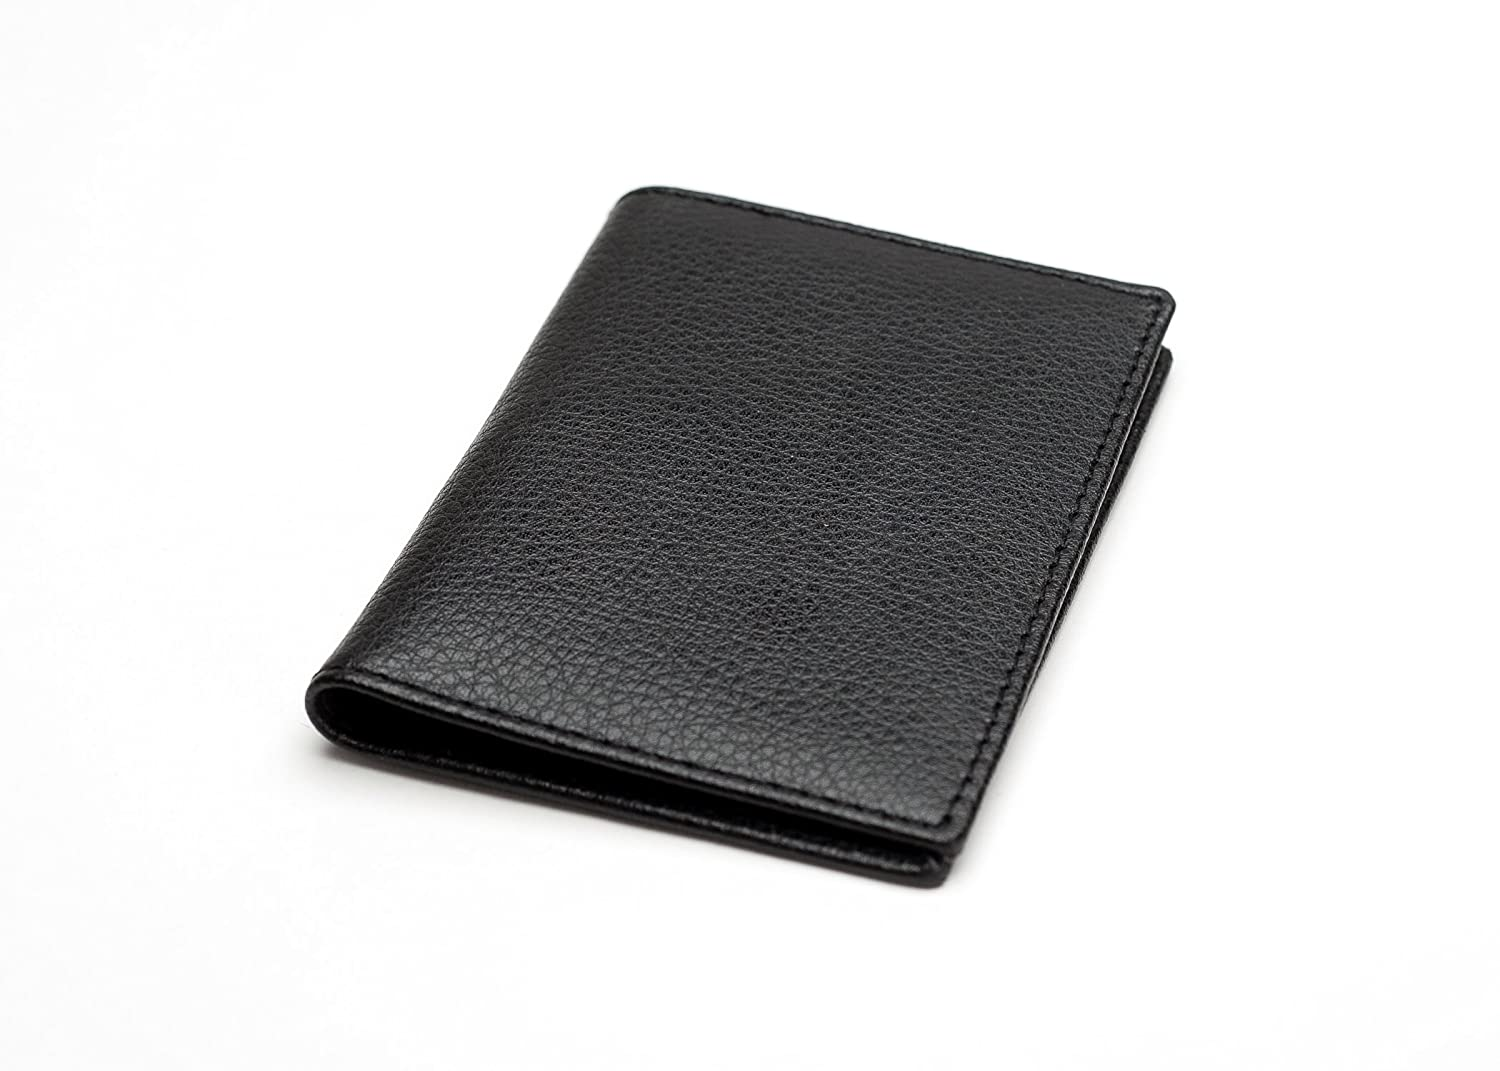 Luxury Chelsea Leather Multi Purpose Card Holder Wallet, Black - Ideal Oyster Card and/or Travel Pass Holder Abbeygate